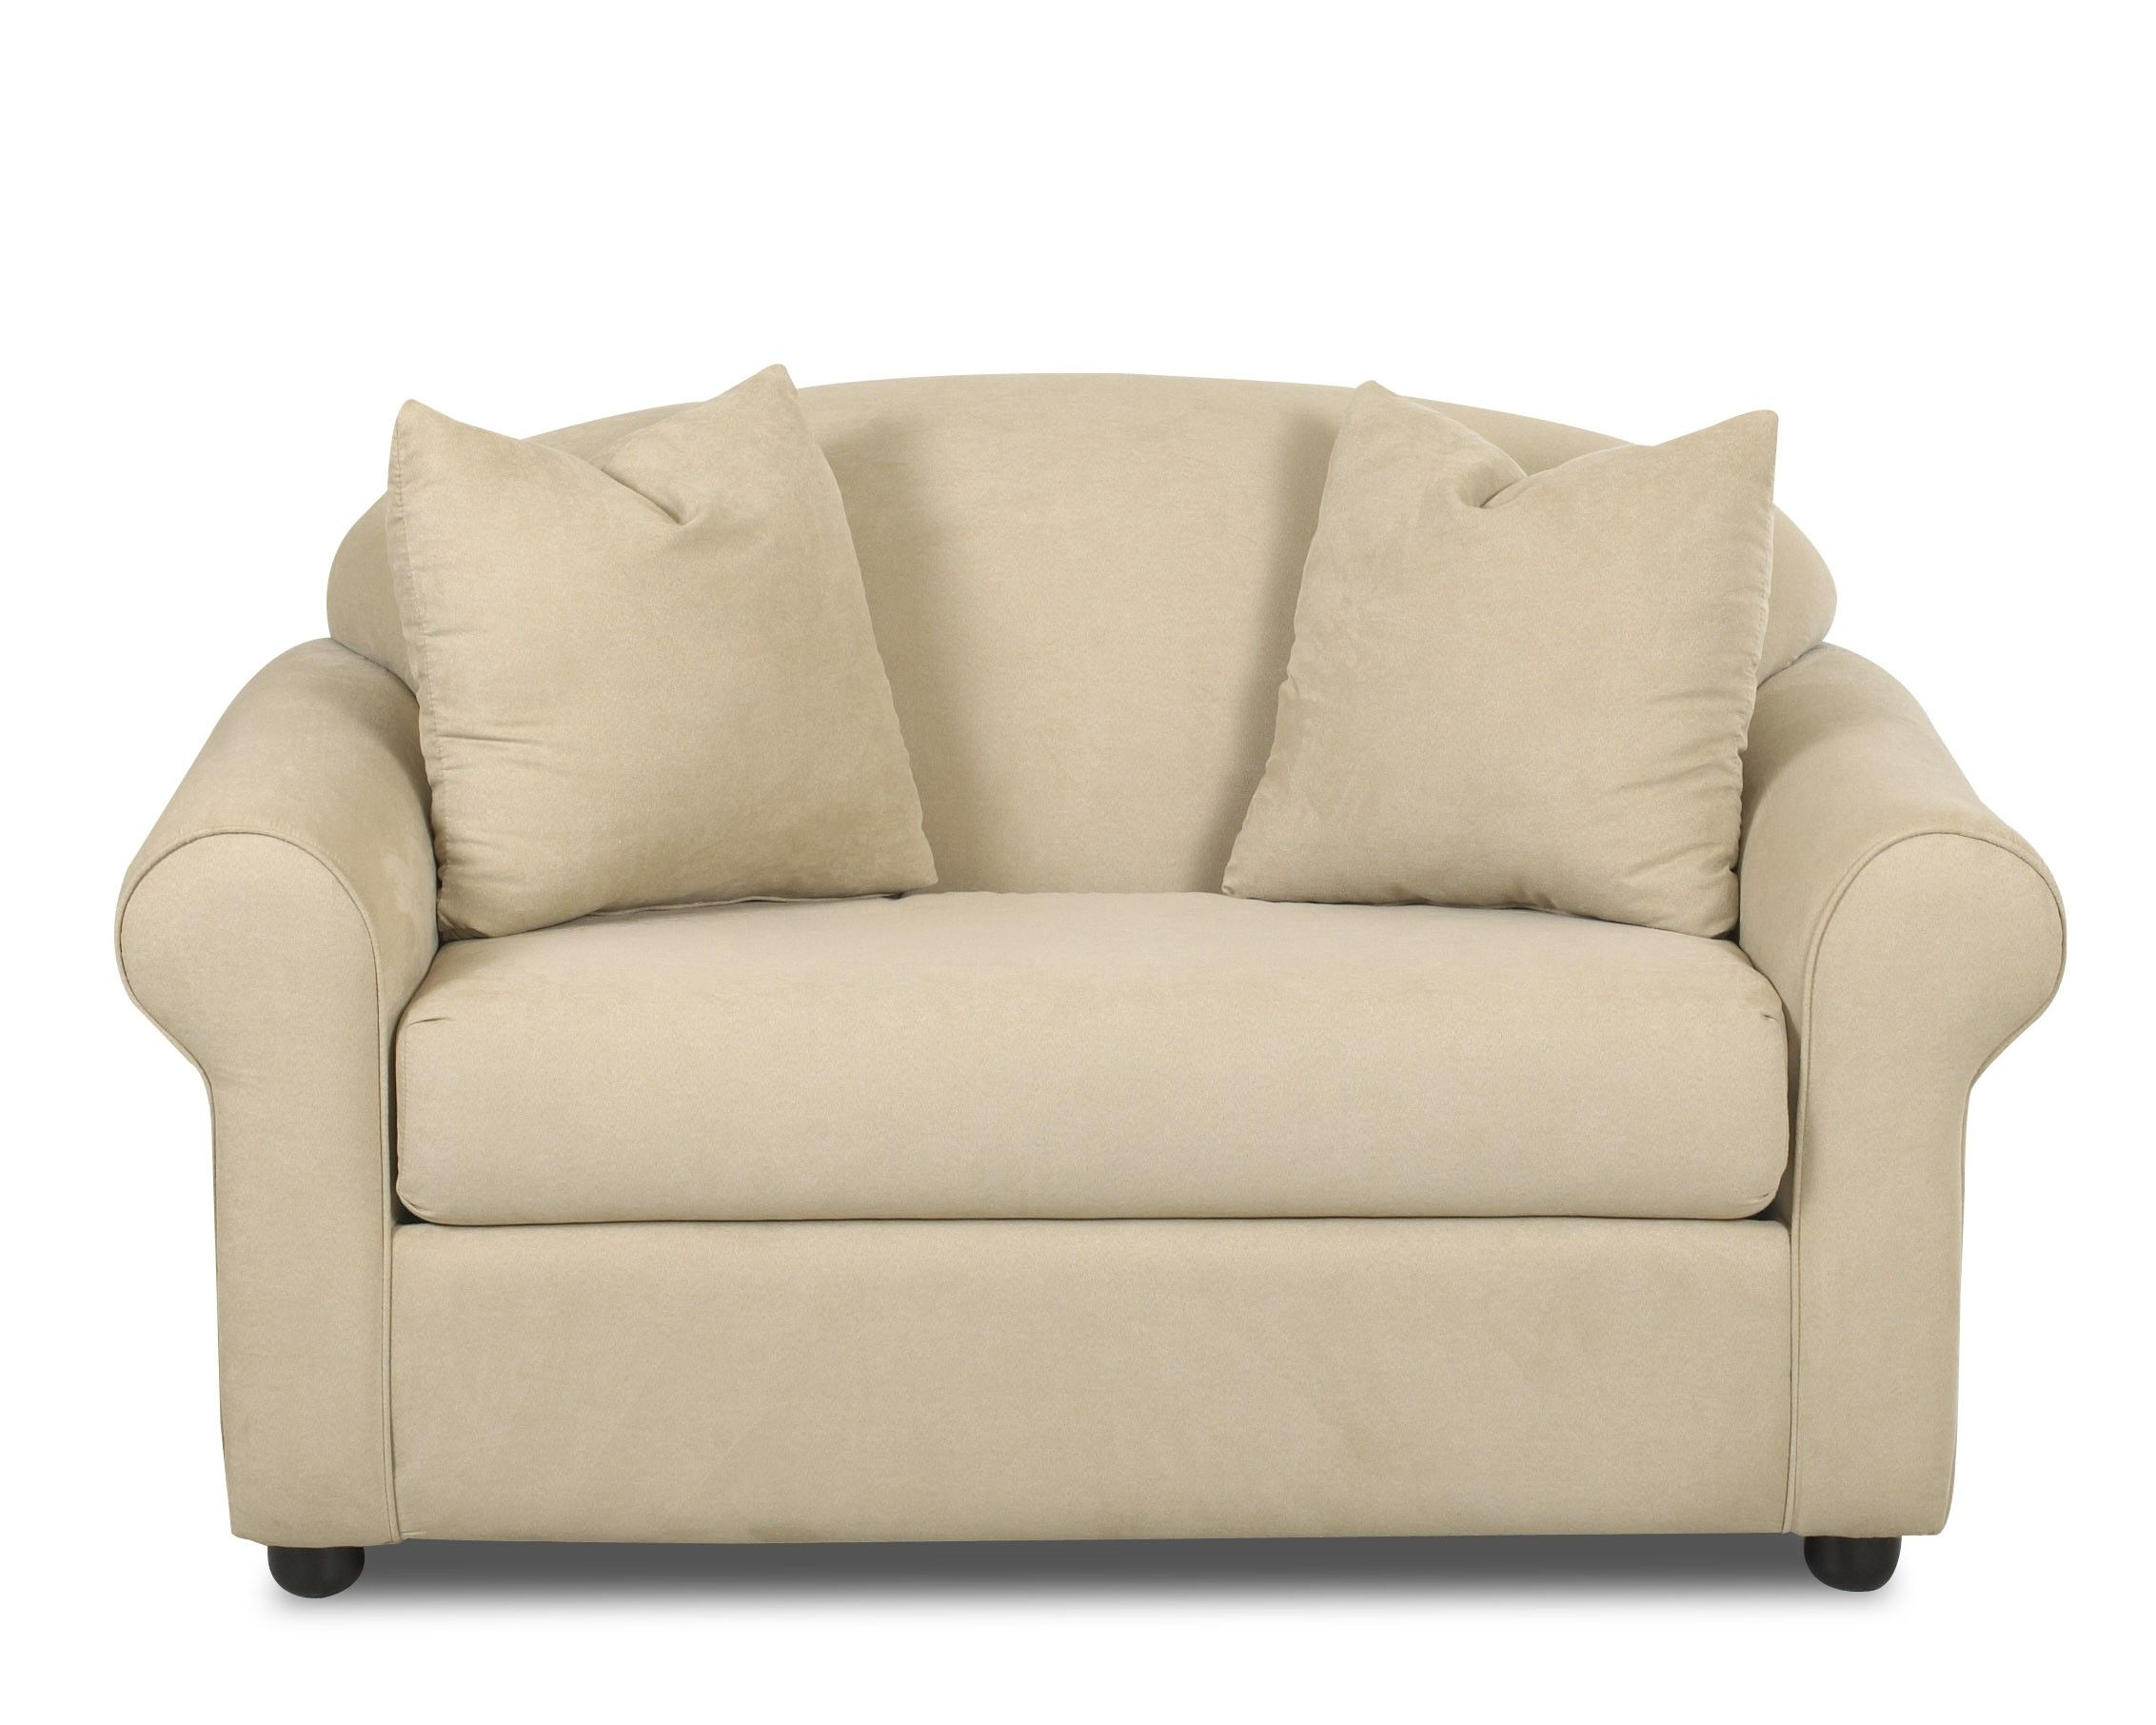 superb crate and barrel lounge sofa pattern-Wonderful Crate and Barrel Lounge sofa Wallpaper